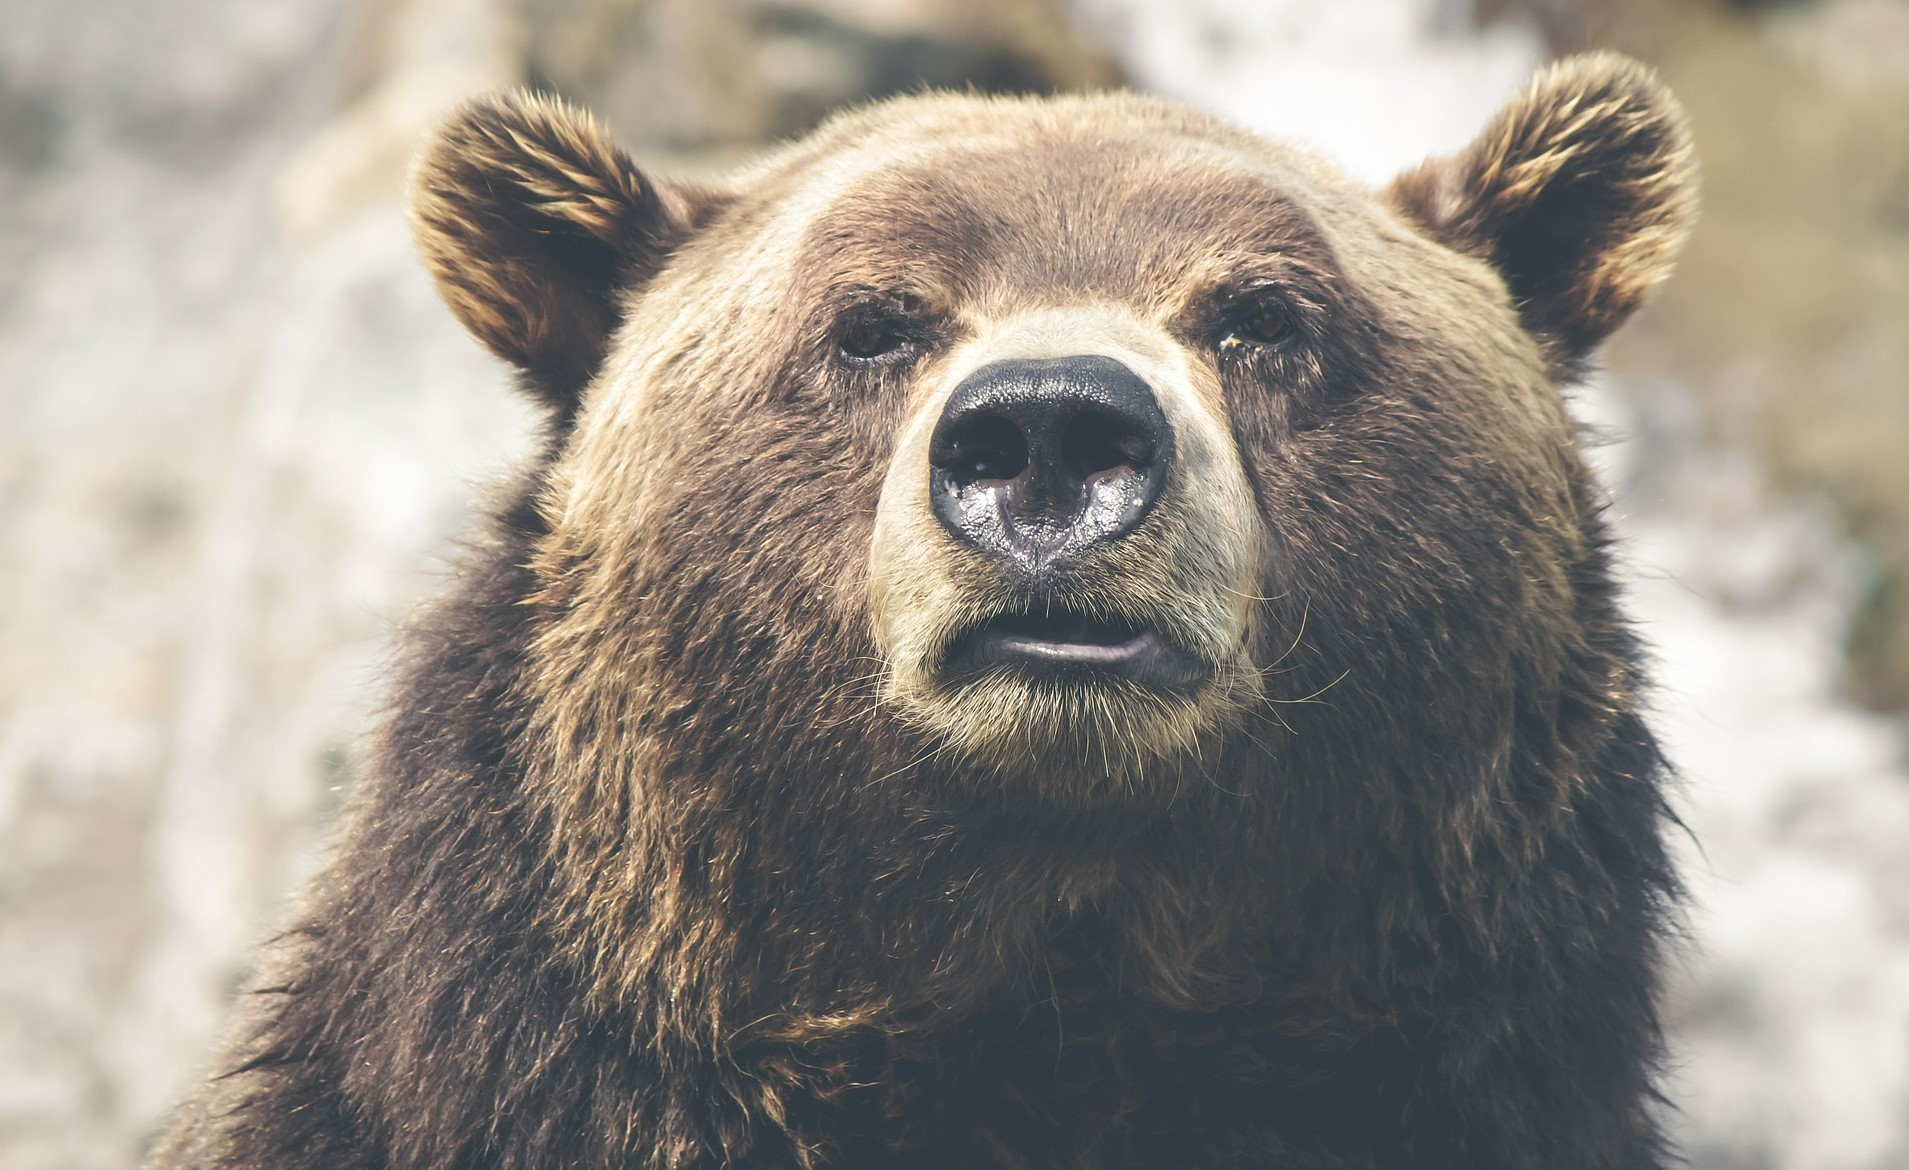 Adult bear looking chill, as profile picture